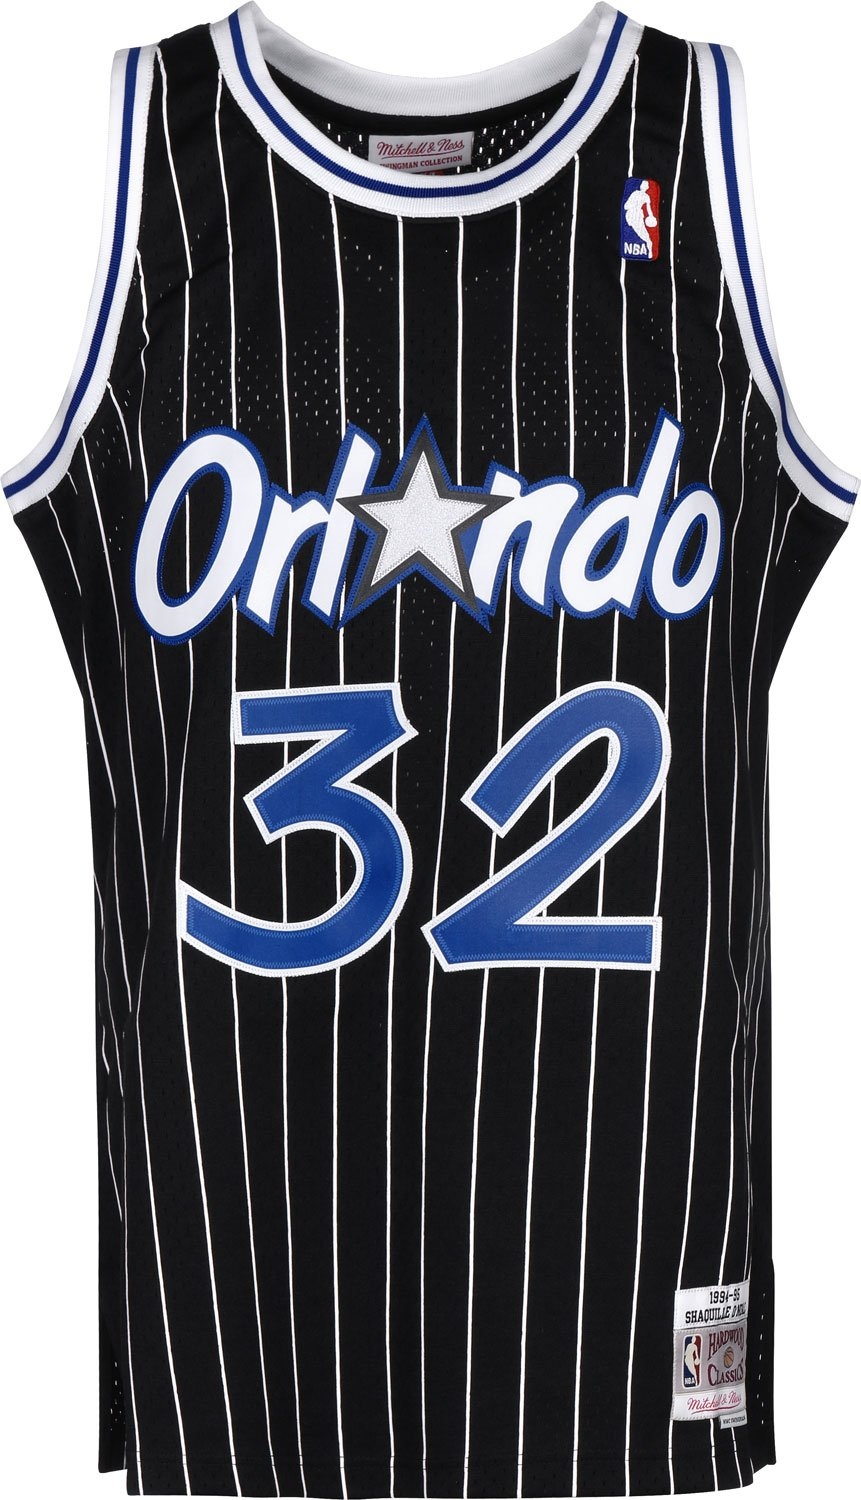 07cc7409dff Mitchell   Ness Shaquille O Neal  32 Orlando Magic 1994-95 Swingman NBA  Jersey Black  Amazon.co.uk  Sports   Outdoors